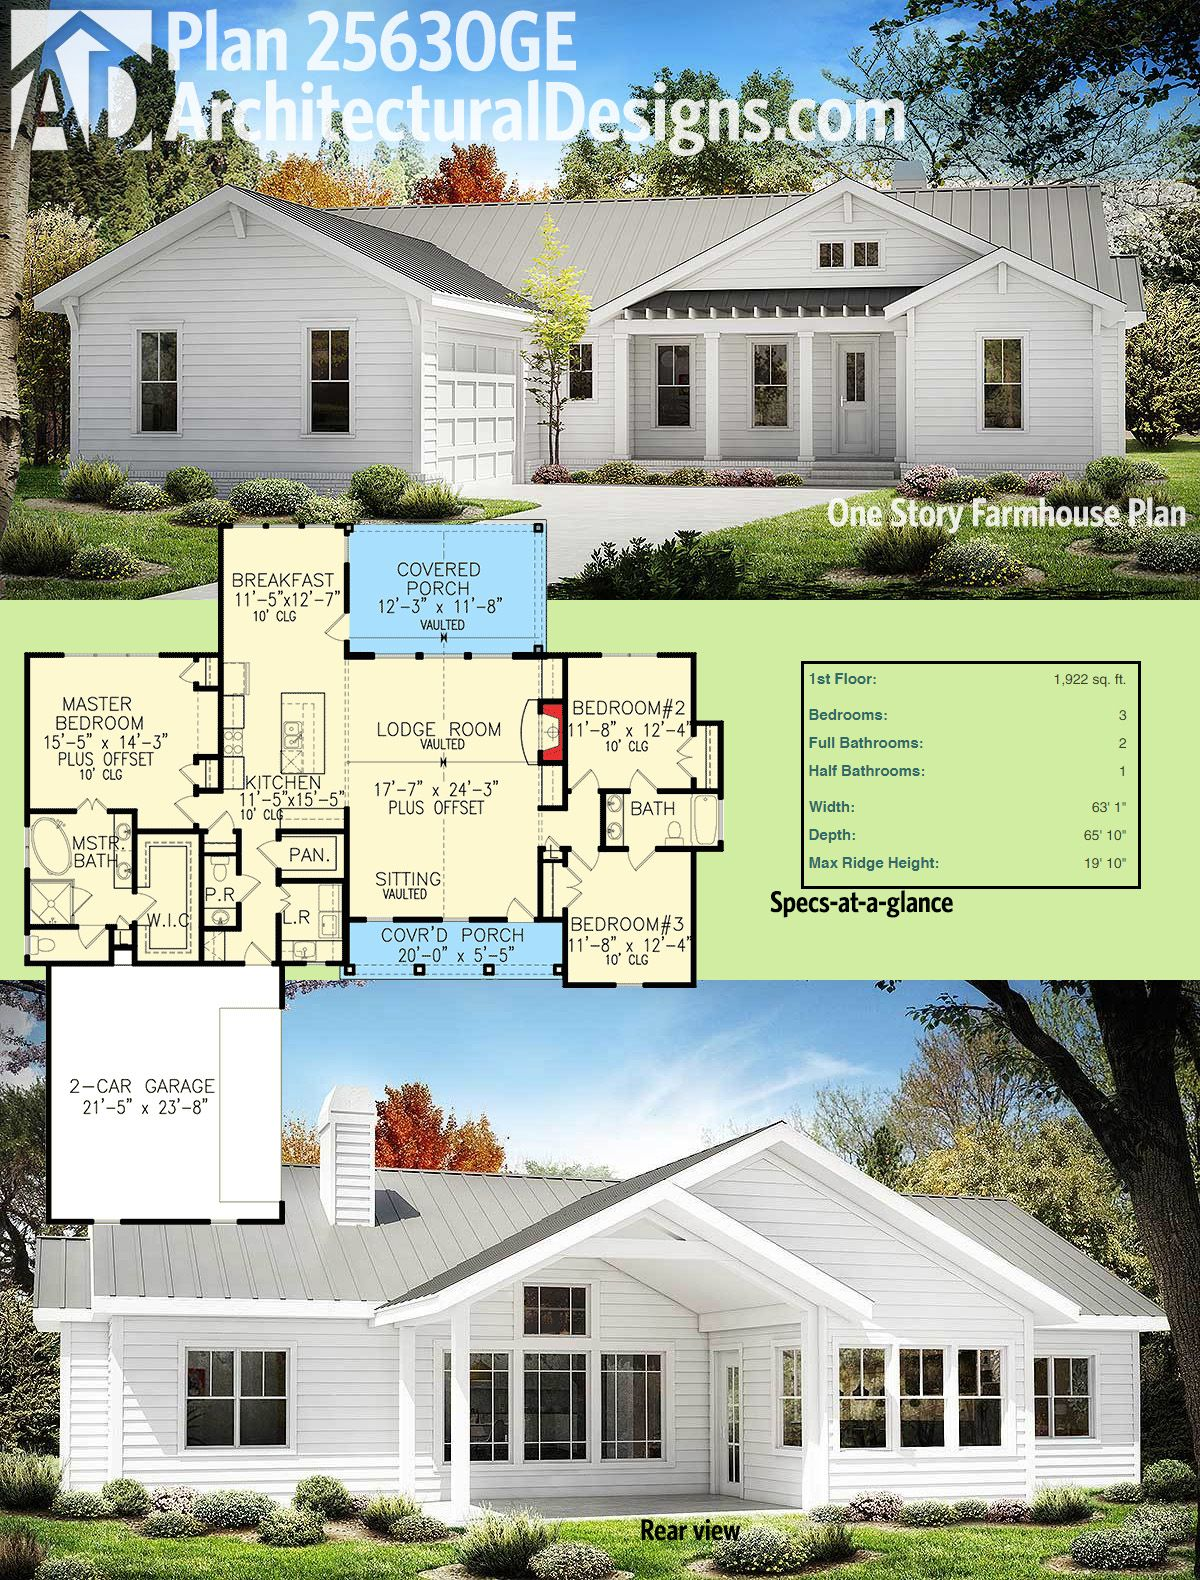 Plan 25630ge one story farmhouse plan farmhouse plans for The modest farmhouse